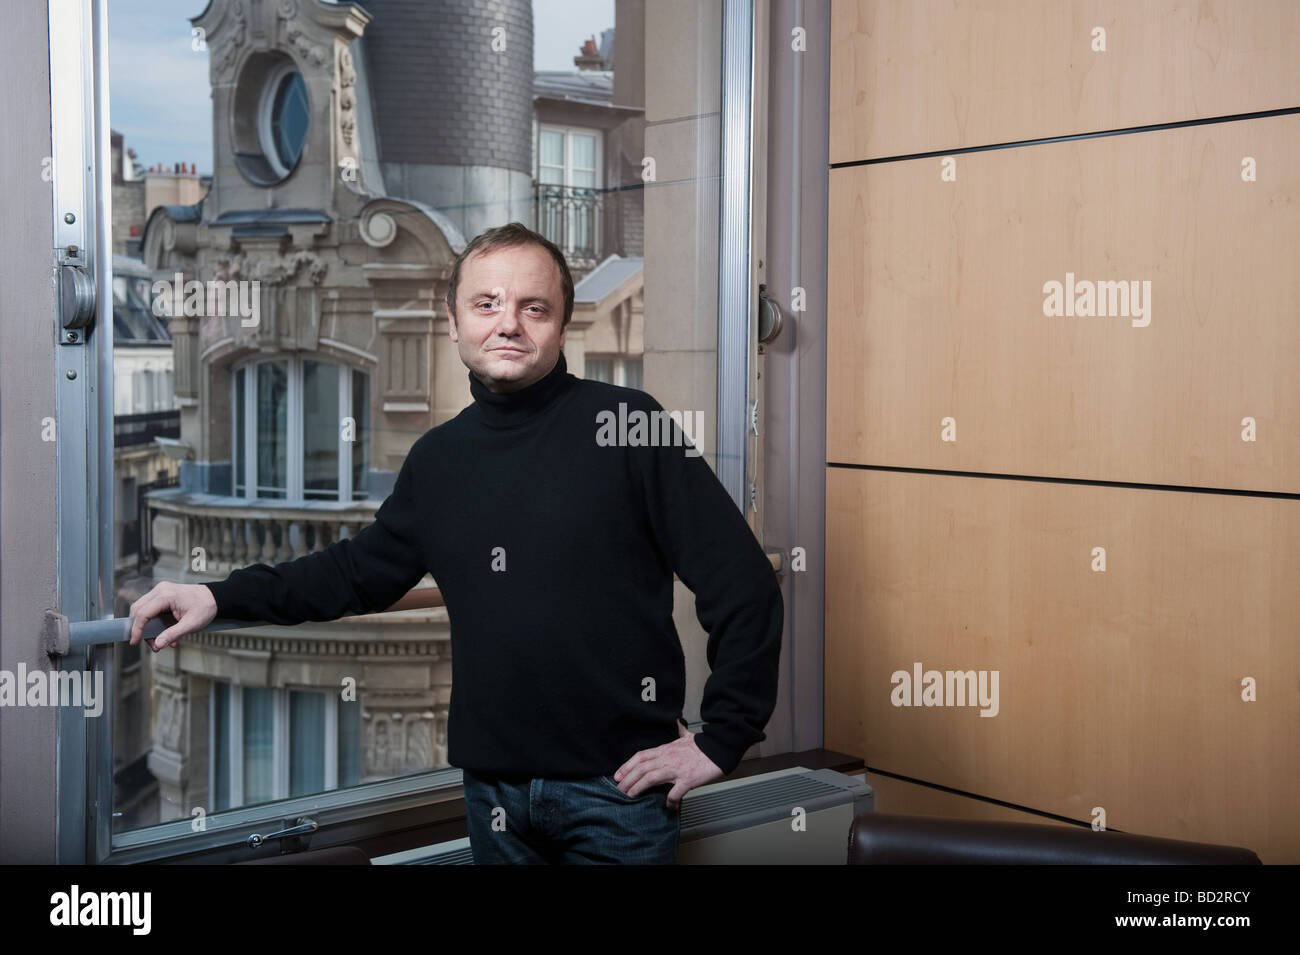 50 year old man at window, Paris - Stock Image